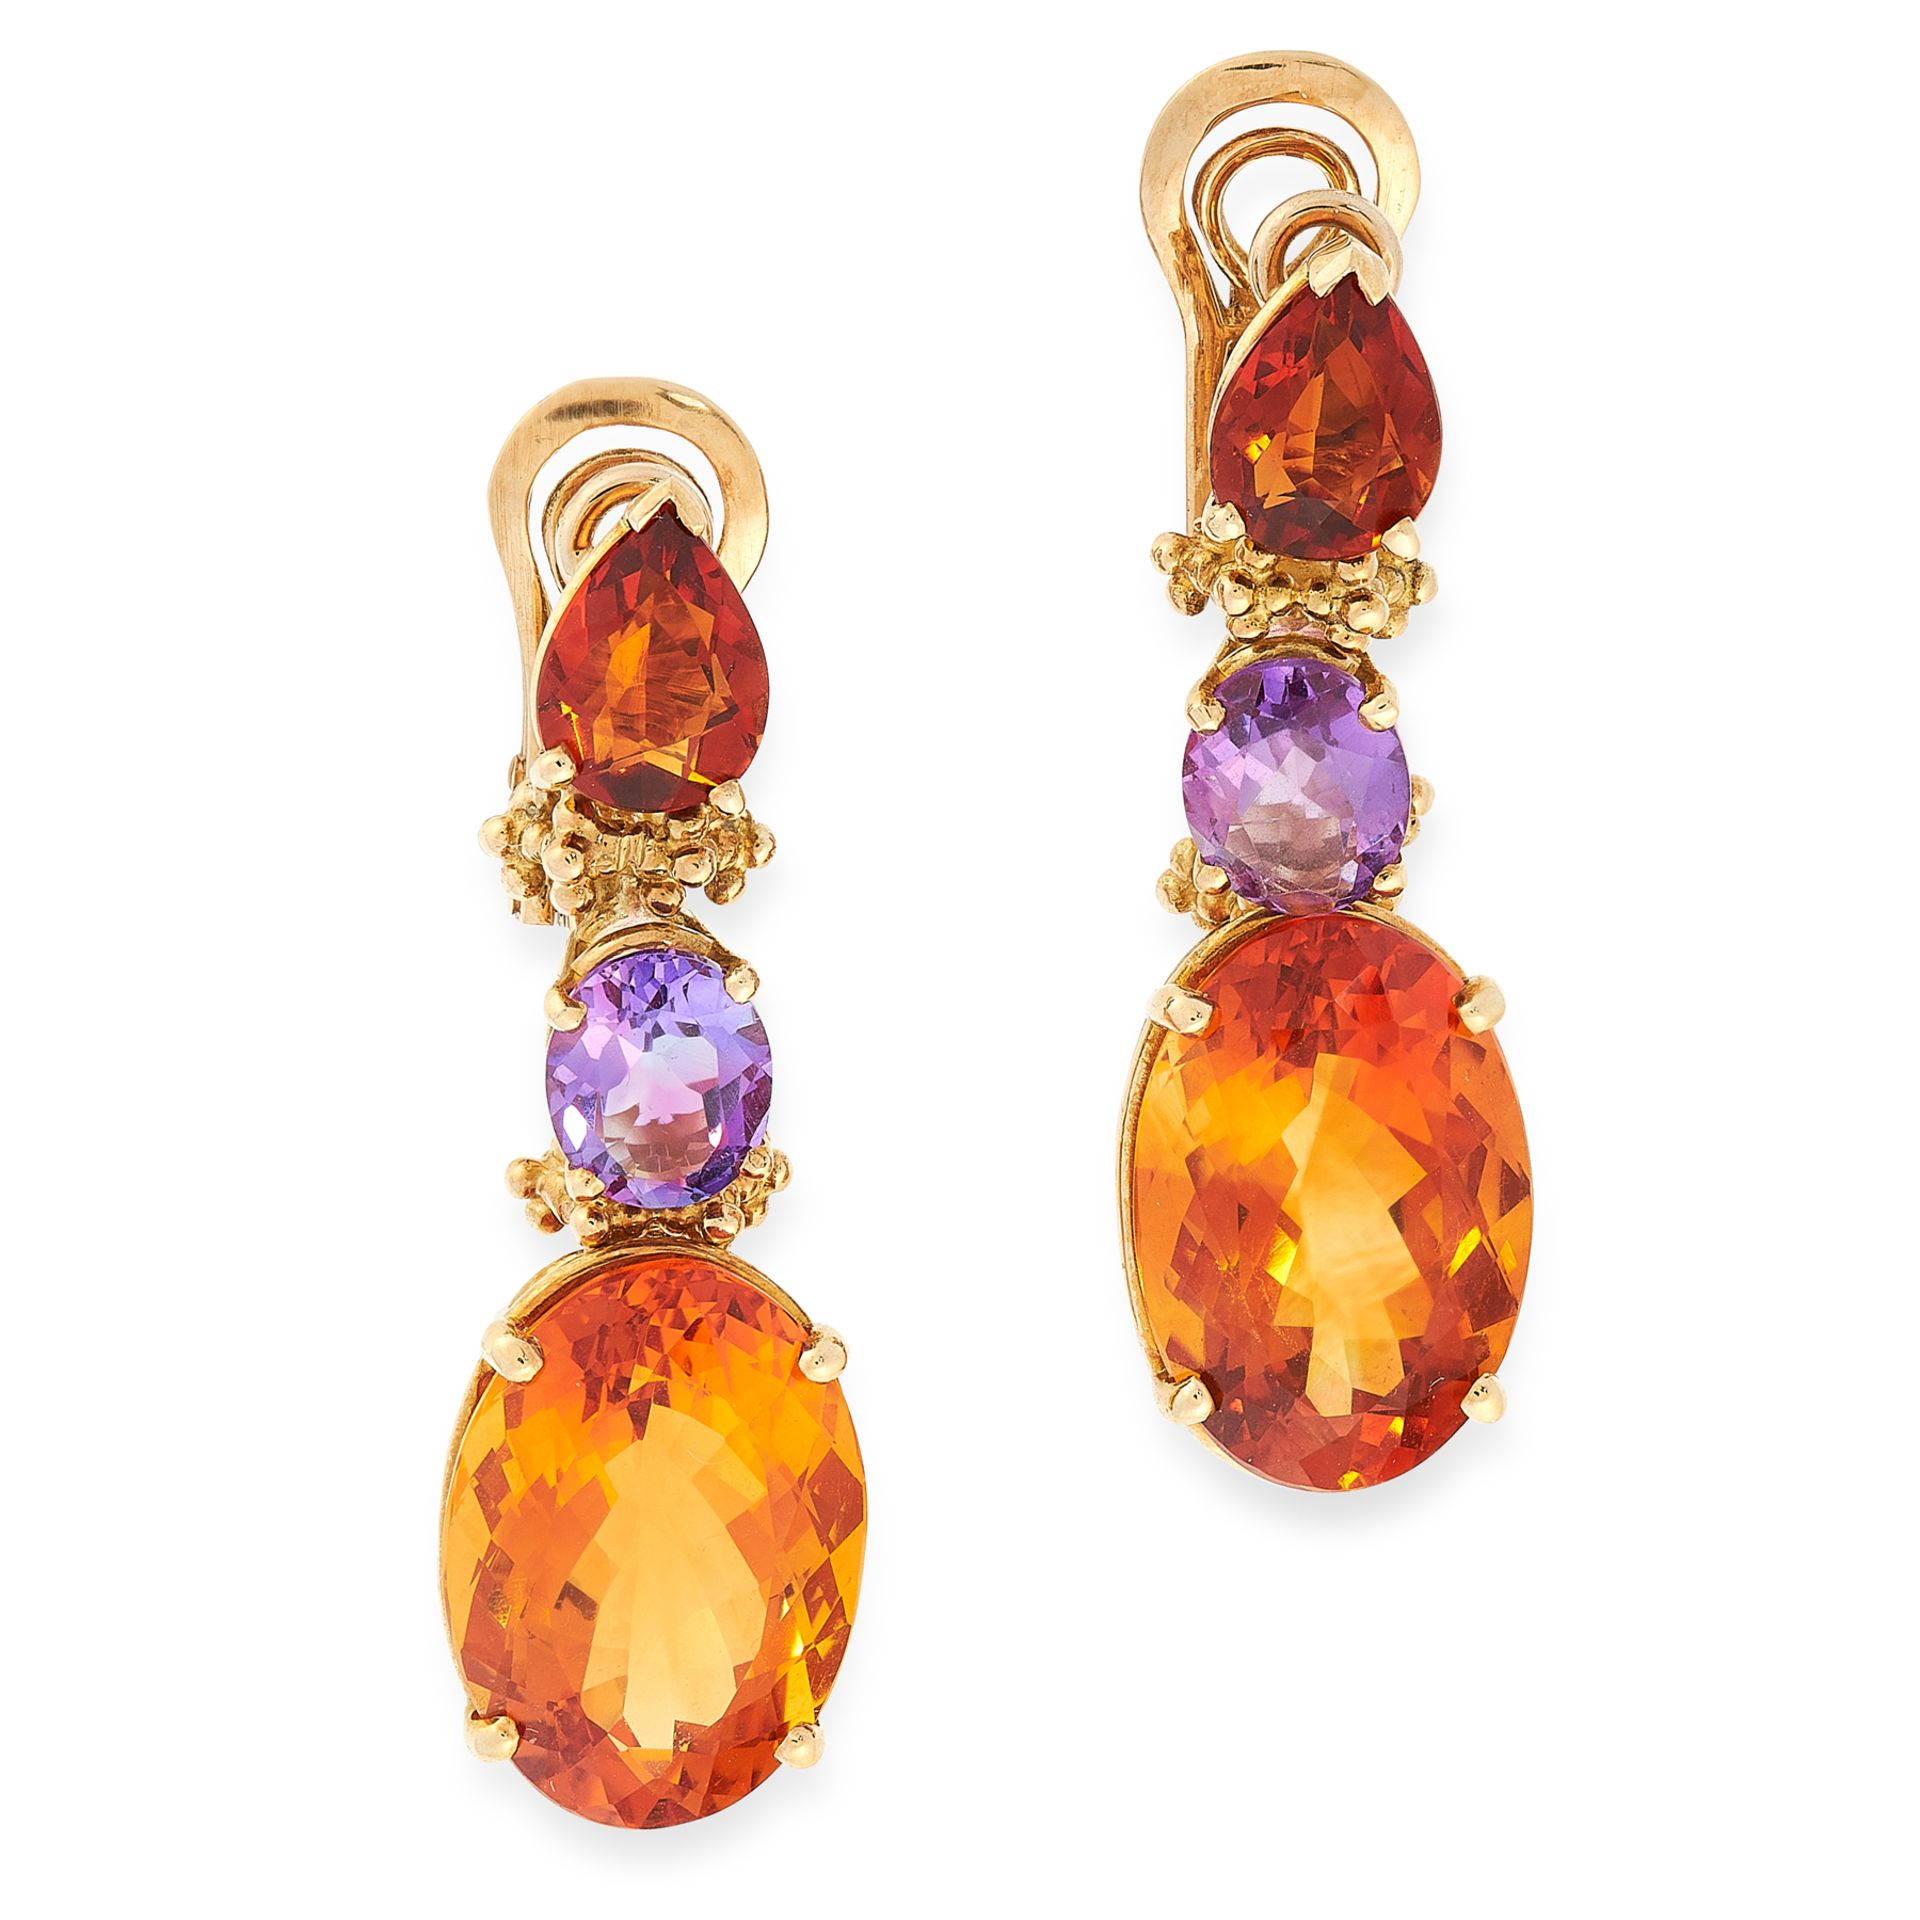 A PAIR OF CITRINE AND AMETHYST EARRINGS in high carat yellow gold, each formed of an oval and pear